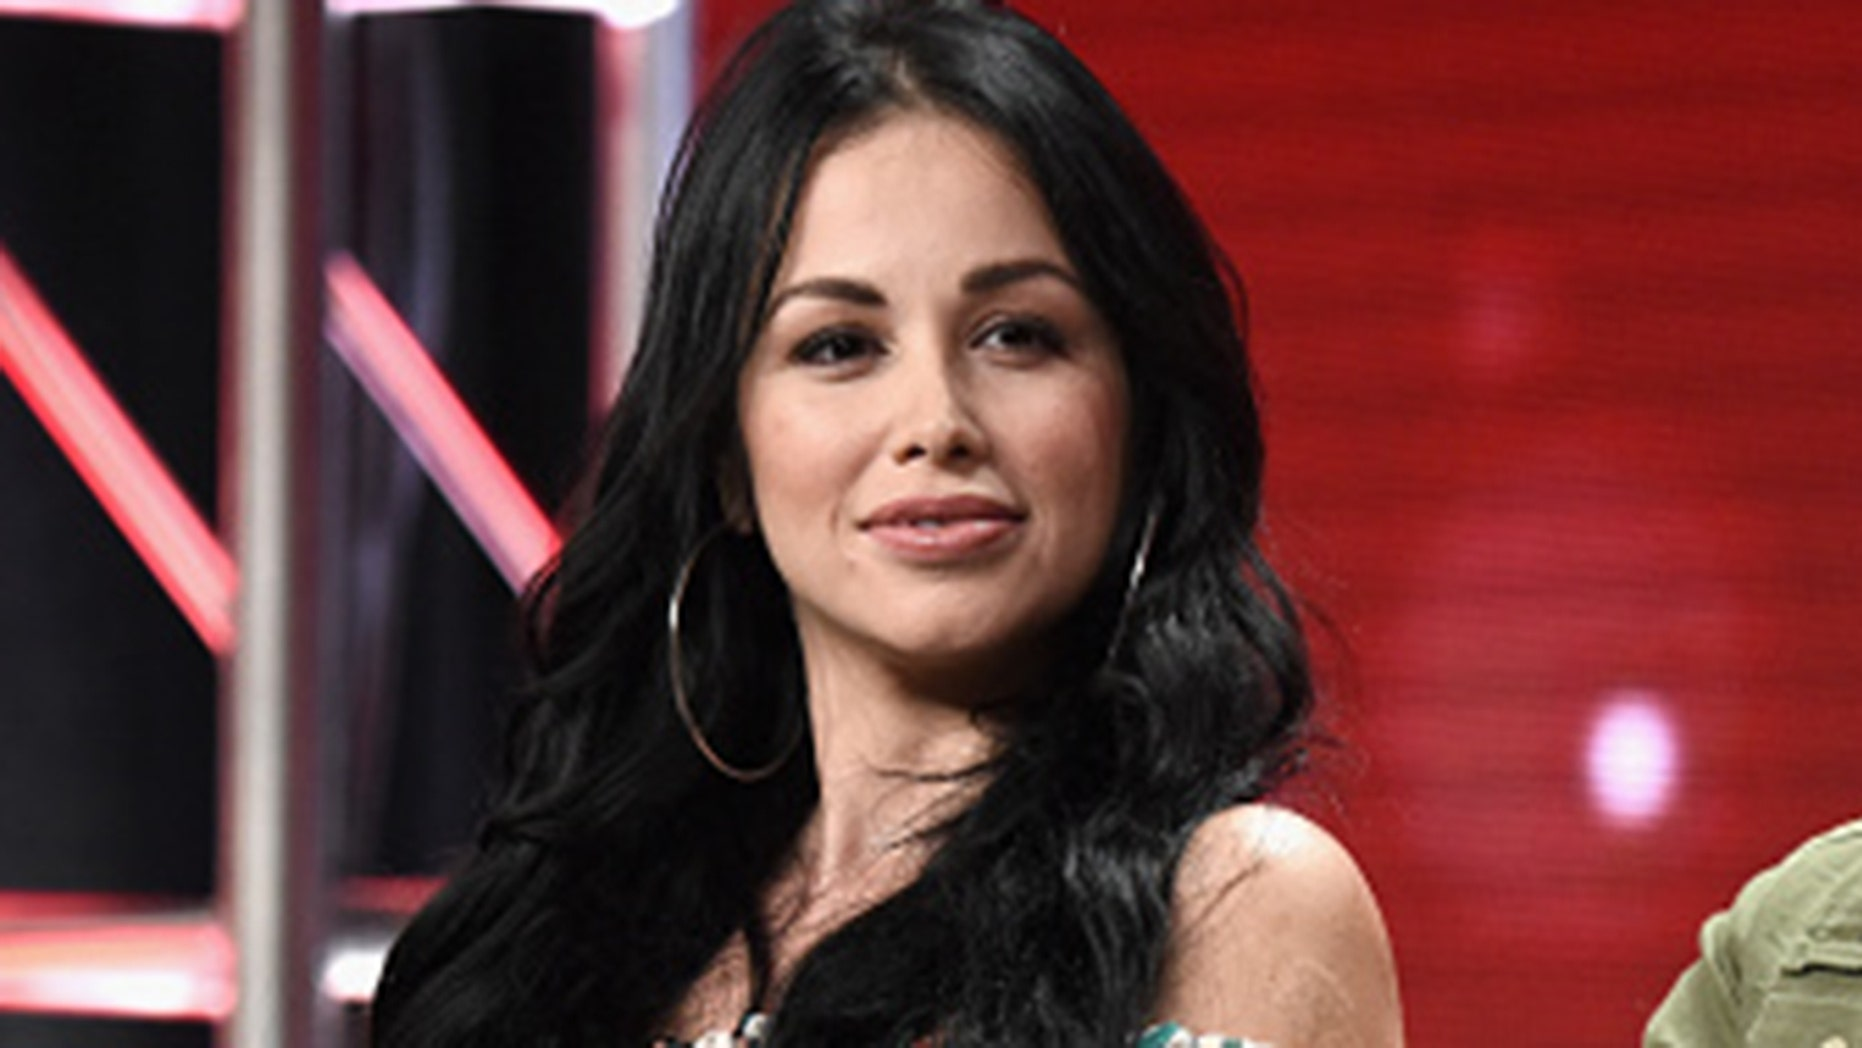 90 Day Fiance' star Paola Mayfield slammed on Instagram for